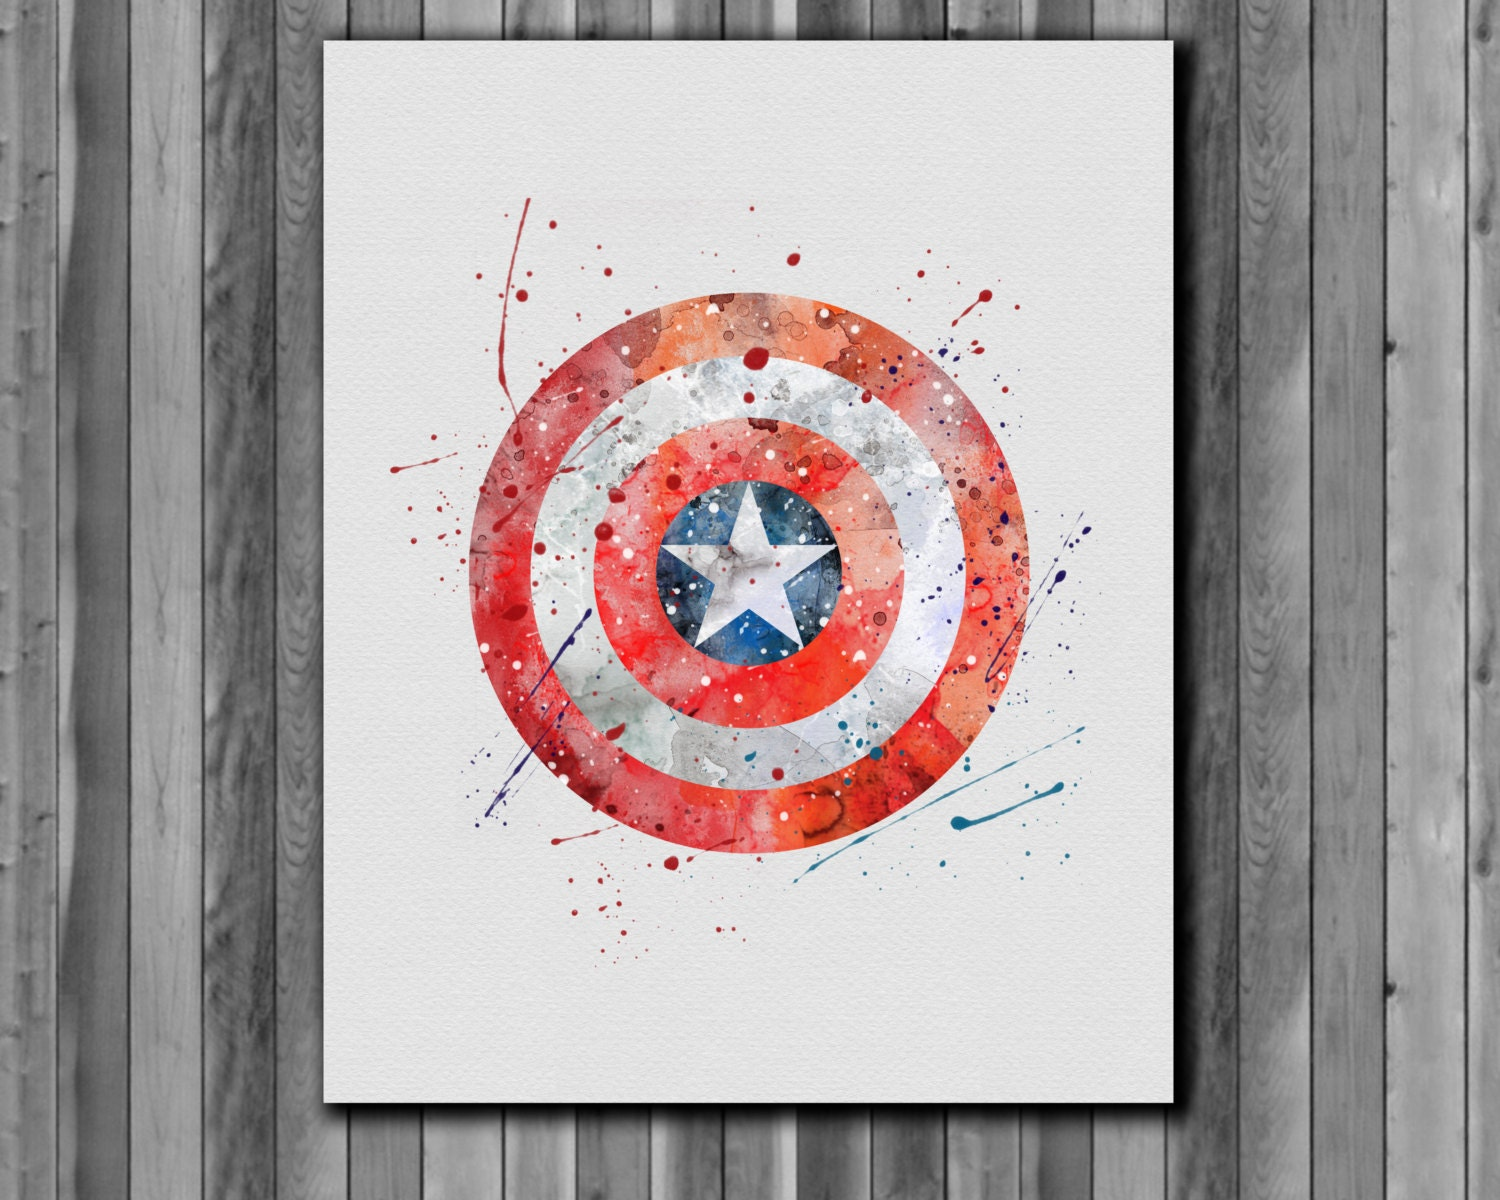 It's just an image of Revered Captain America Shield Printable